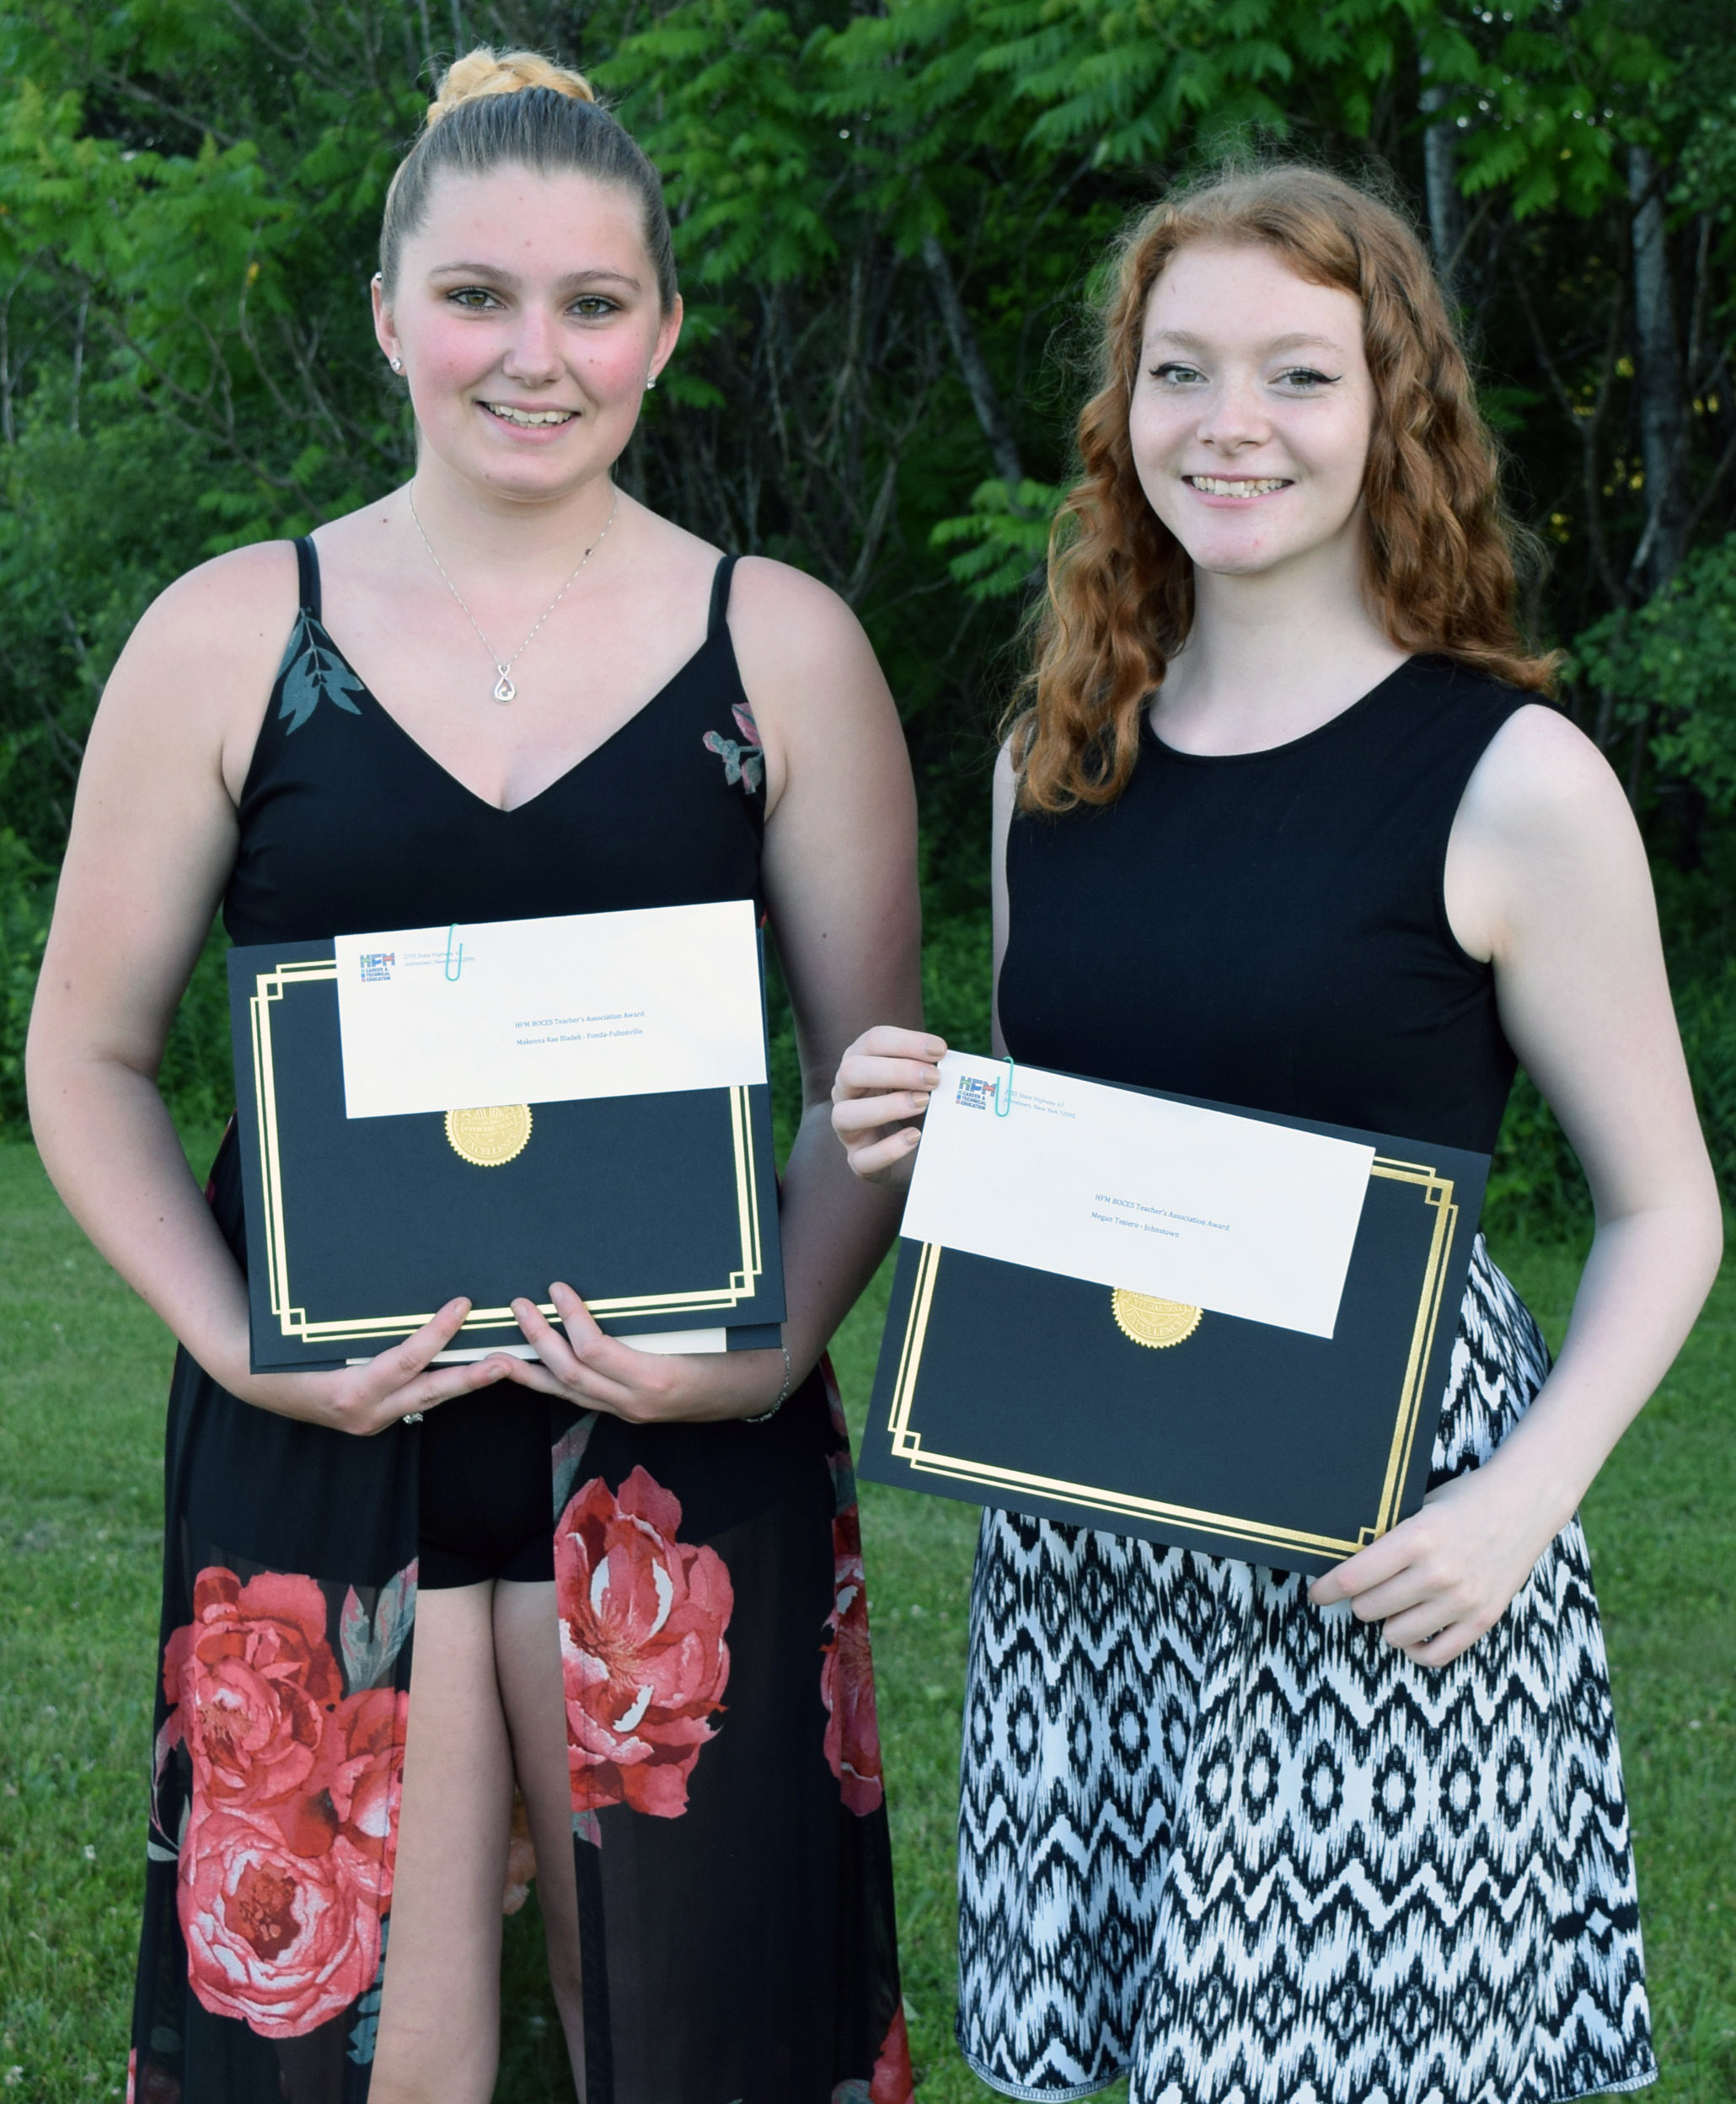 Bladek and Tesiero hold their certificates posing for a picure.